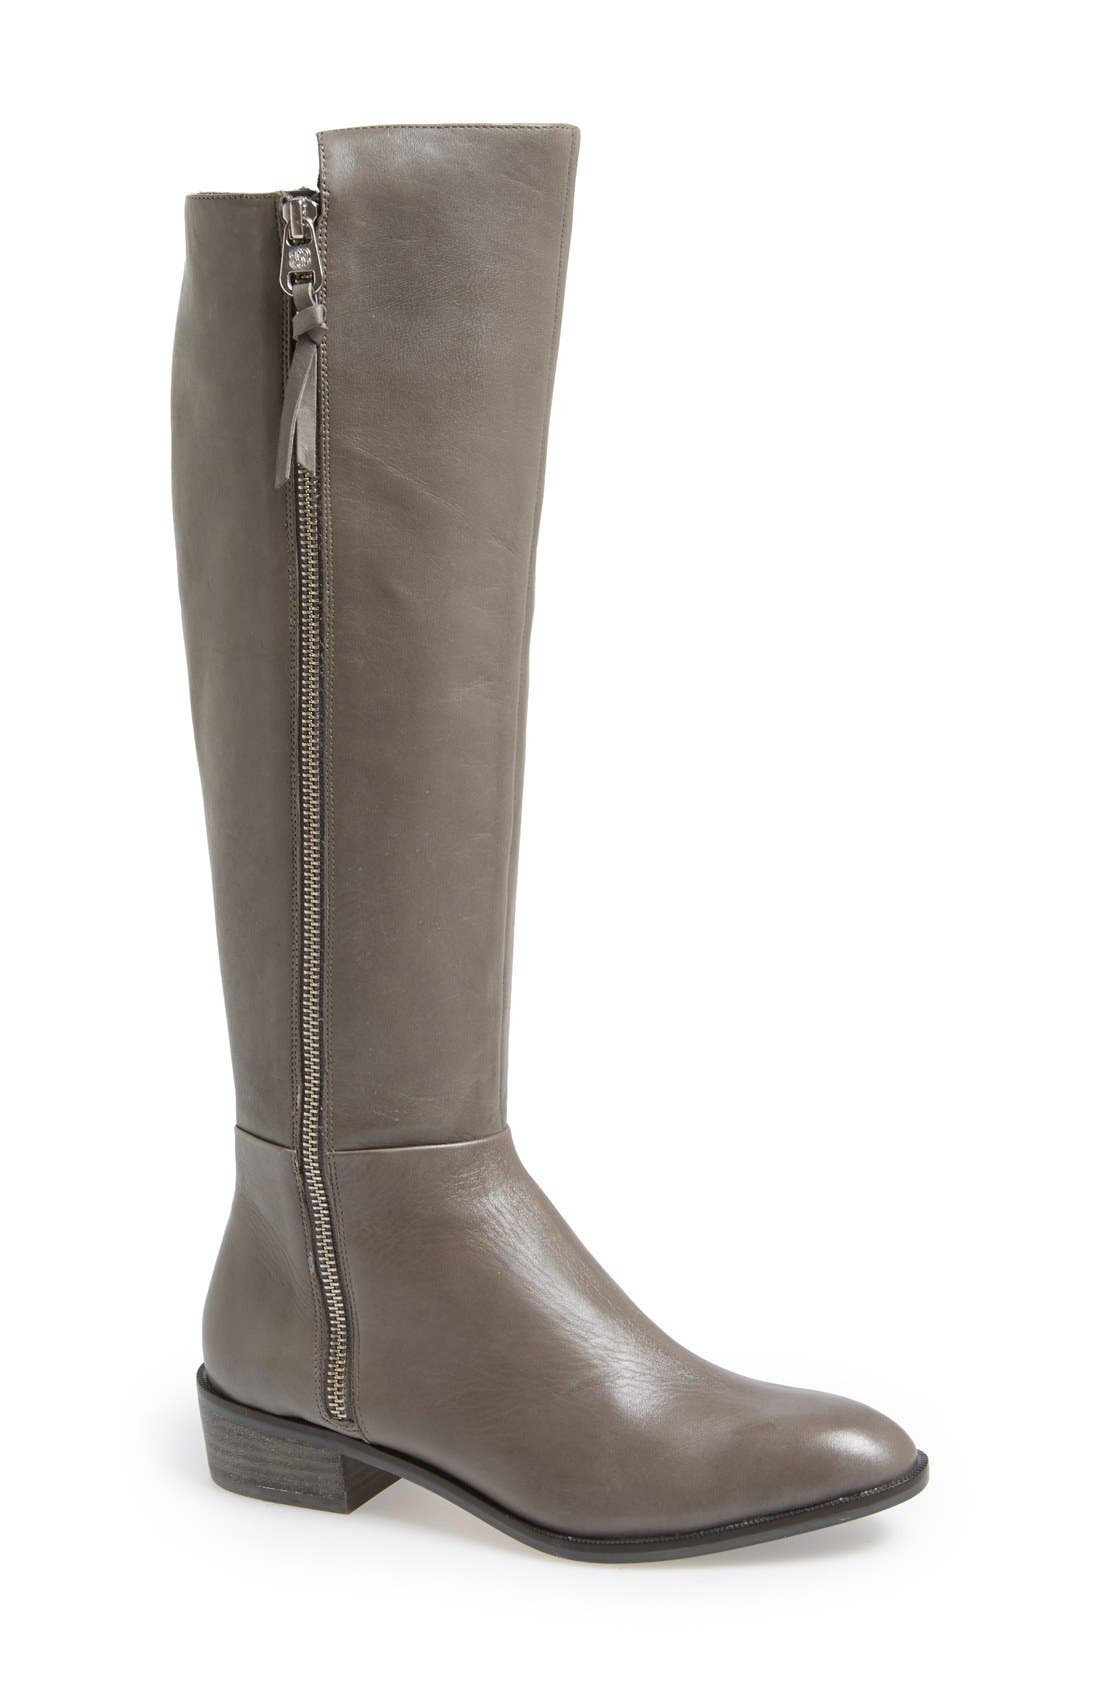 Alternate Image 1 Selected - Elliott Lucca 'Roziland' Riding Boot (Women)